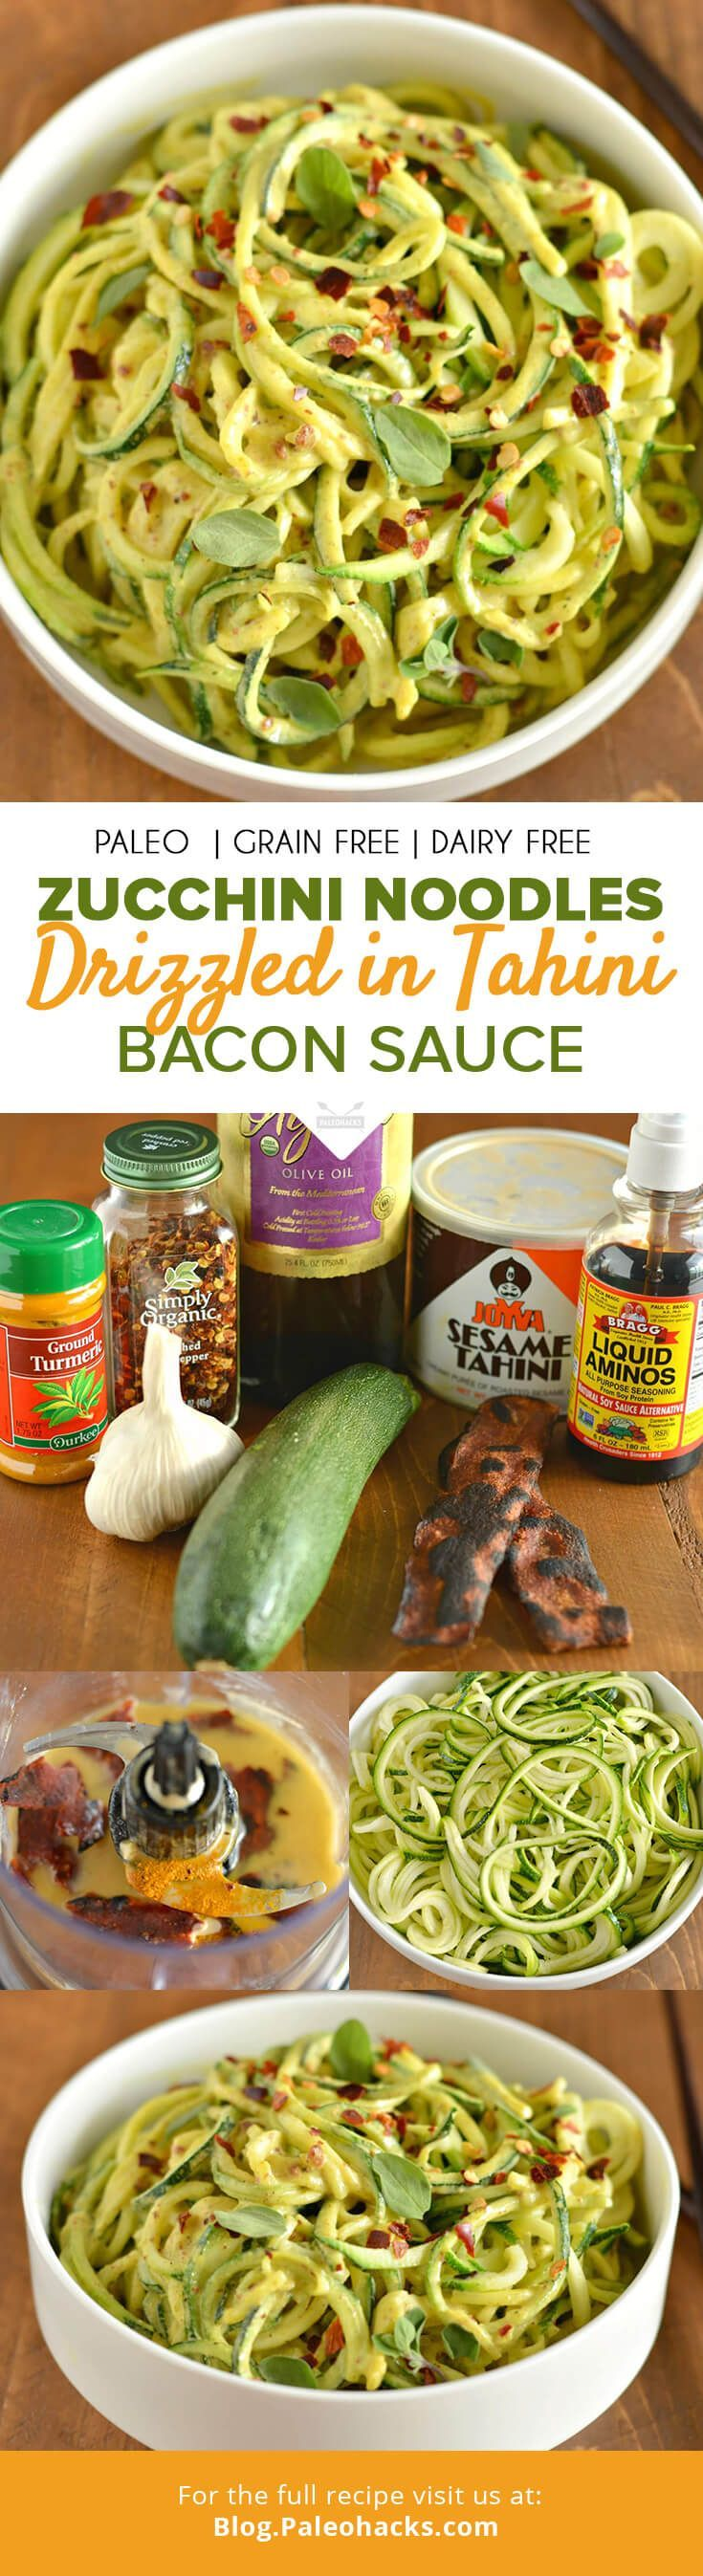 Think a creamy tahini sauce with bits of salty bacon drizzled over a bed of fresh zucchini zoodles. If you haven't zoodled yet, this is the perfect recipe to get started! For the full recipe visit us here: http://paleo.co/tahinibaconzoodles